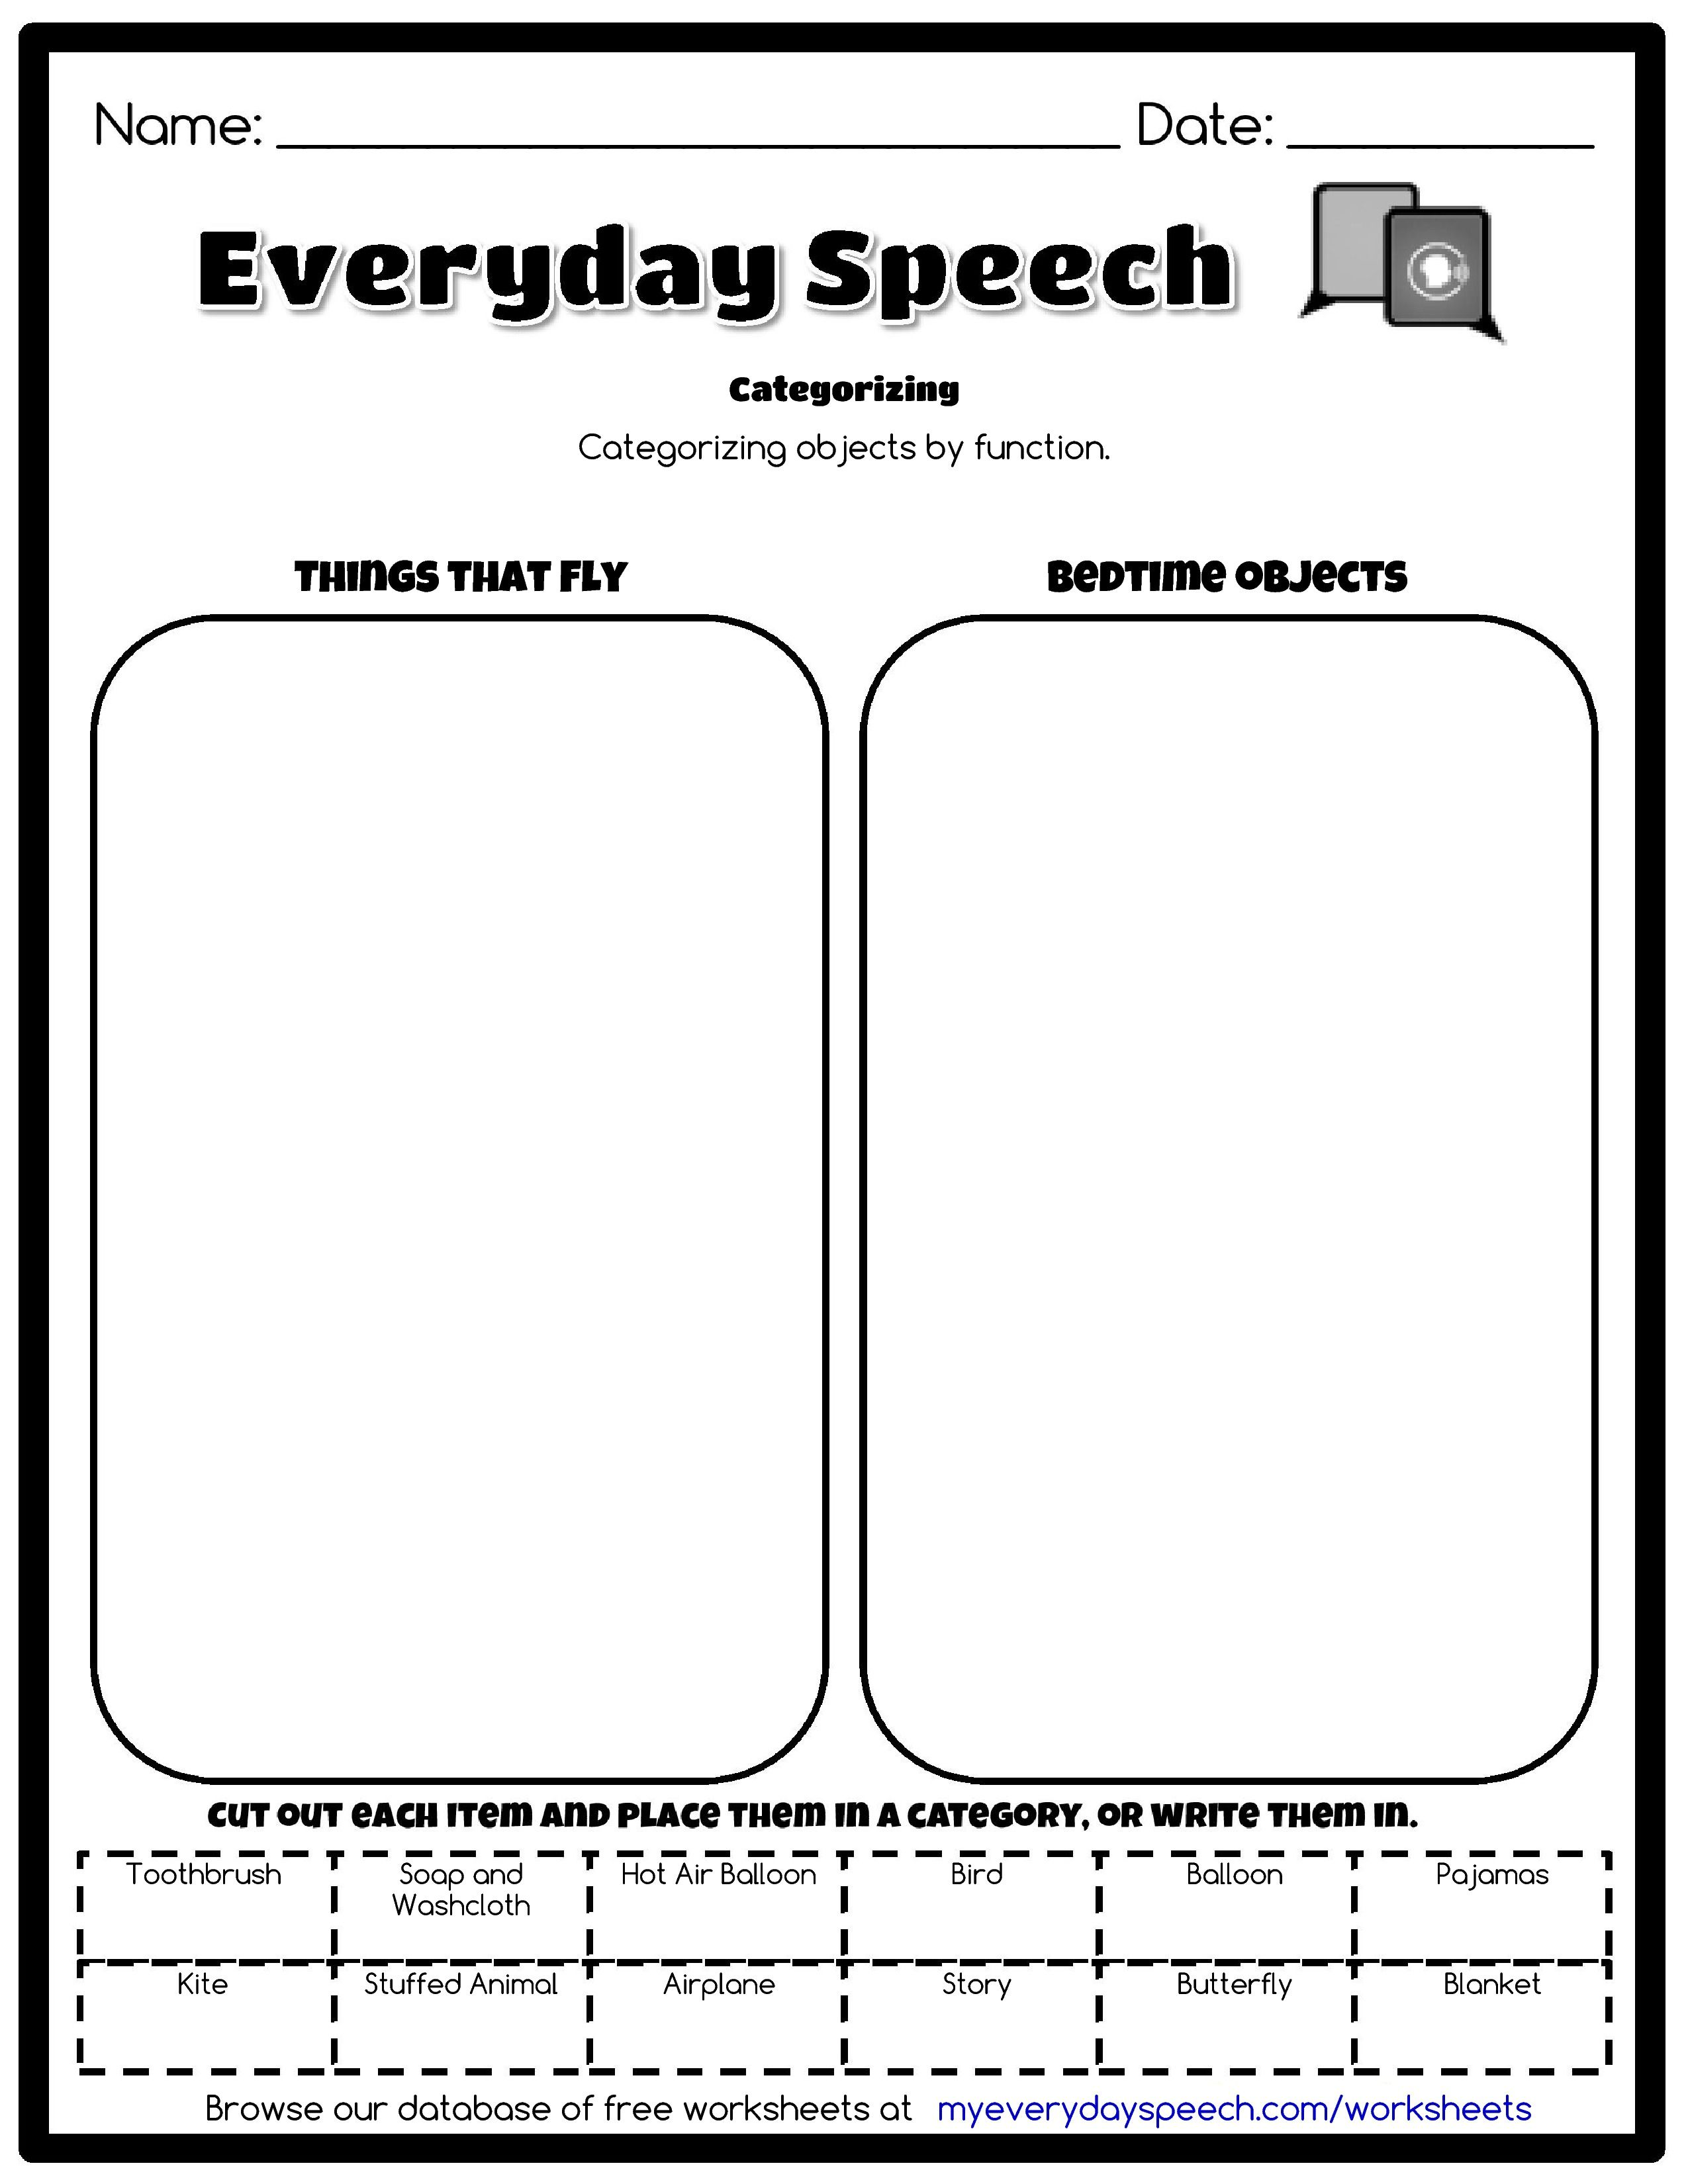 worksheet Function Or Not Worksheet check out the worksheet i just made using everyday speechs creator categorizing categorizing